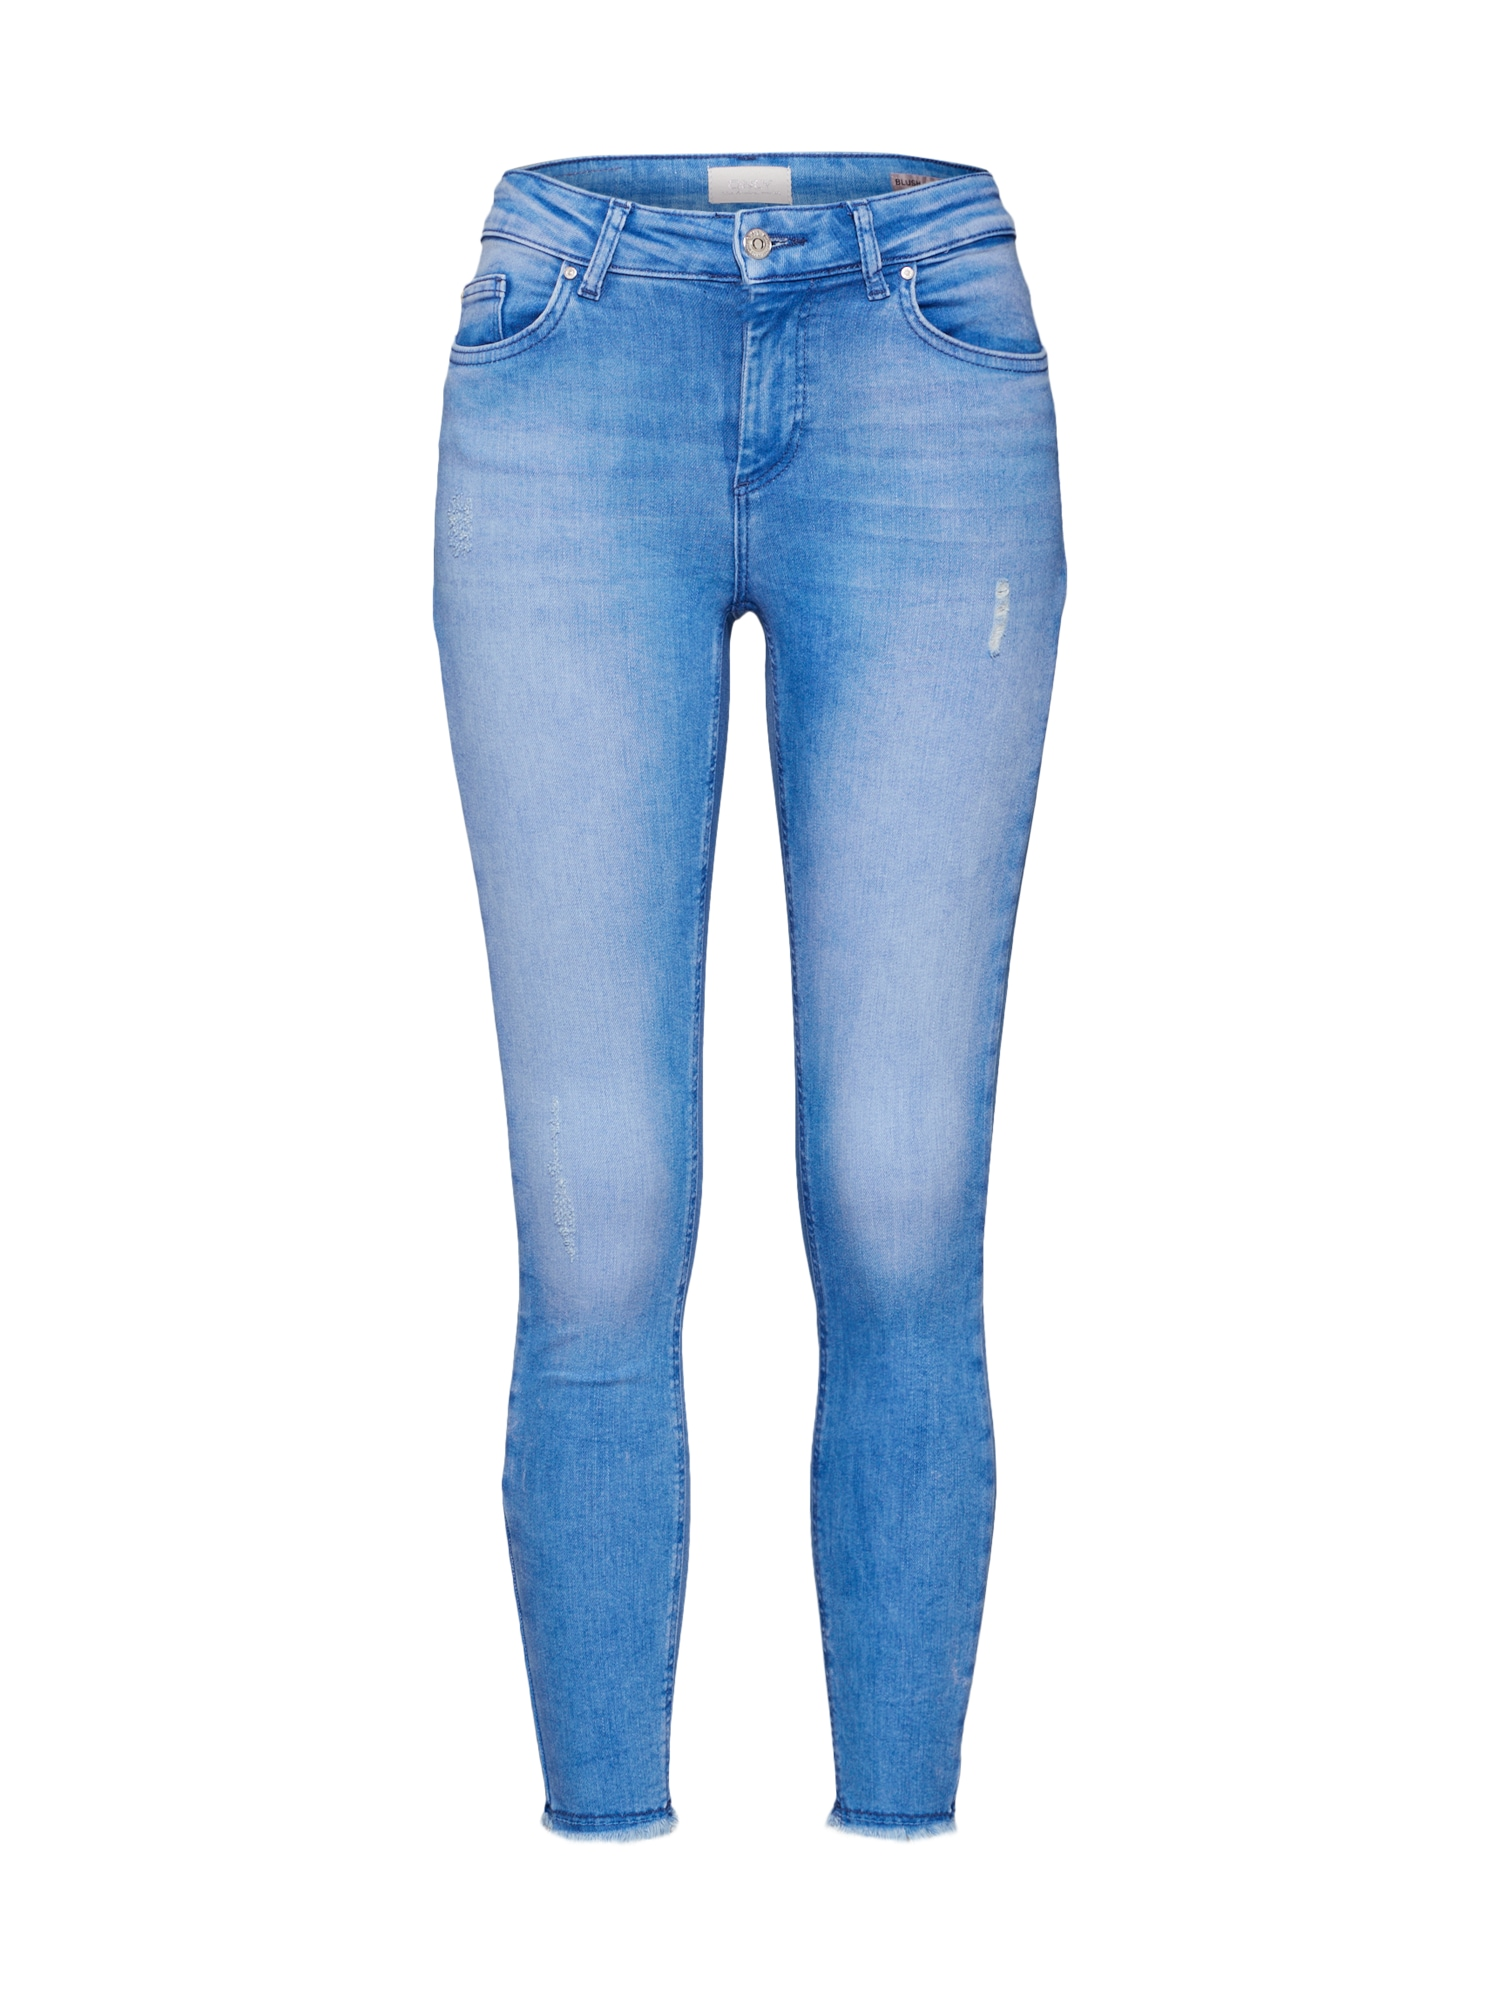 ONLY Džínsy 'Blush'  modrá denim